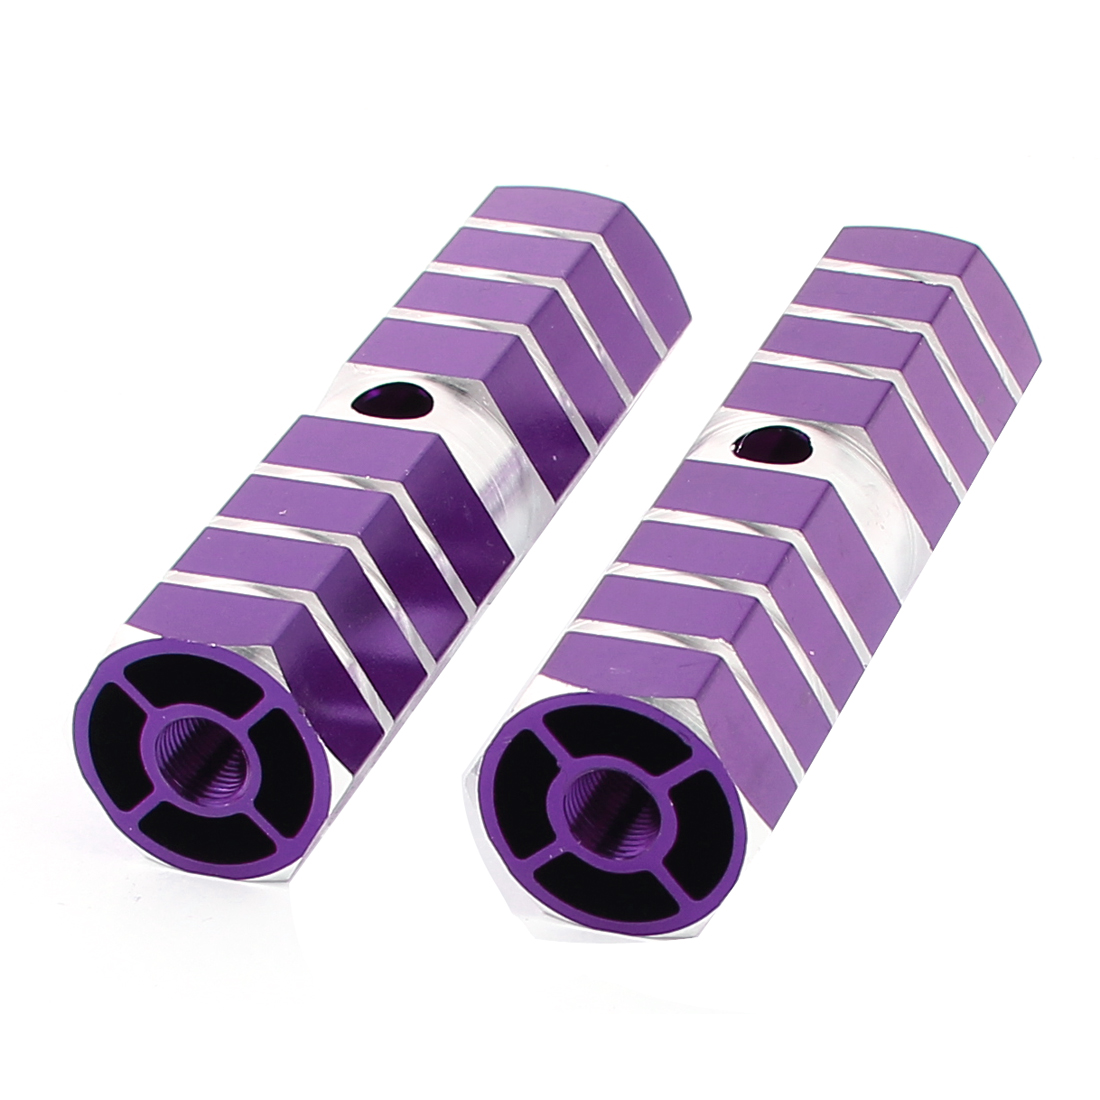 2pcs 100x30mm Bike Bicycle Aluminum Foot Pegs Axles Purple